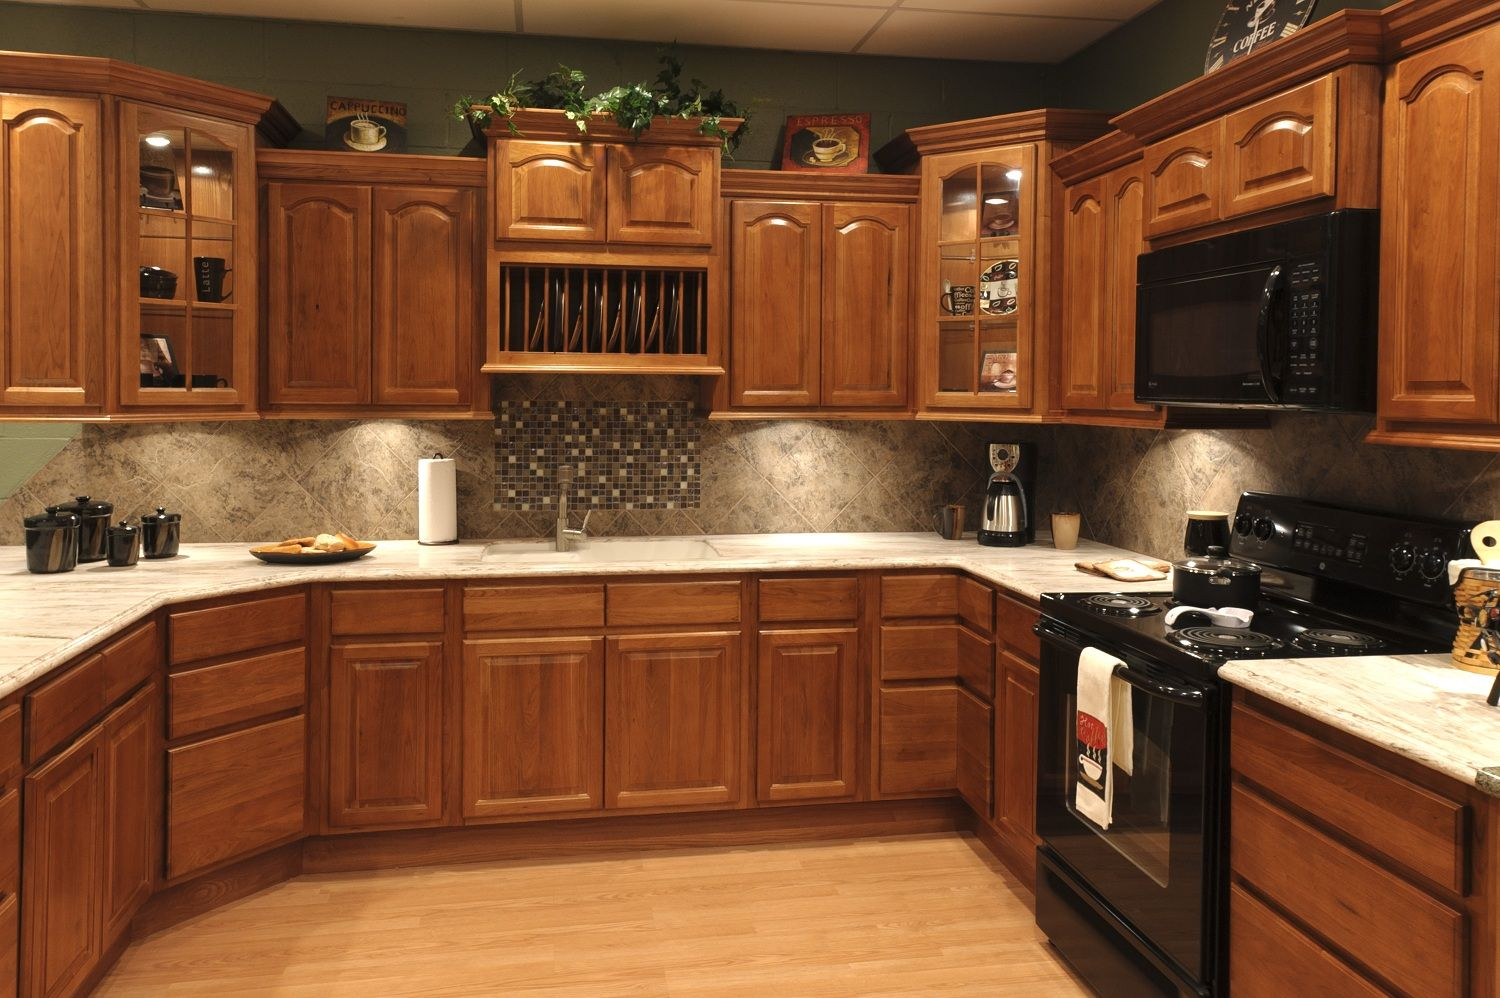 Beautiful Kitchen Cabinets Windy Hill Hardwoods Jmark I Blogz